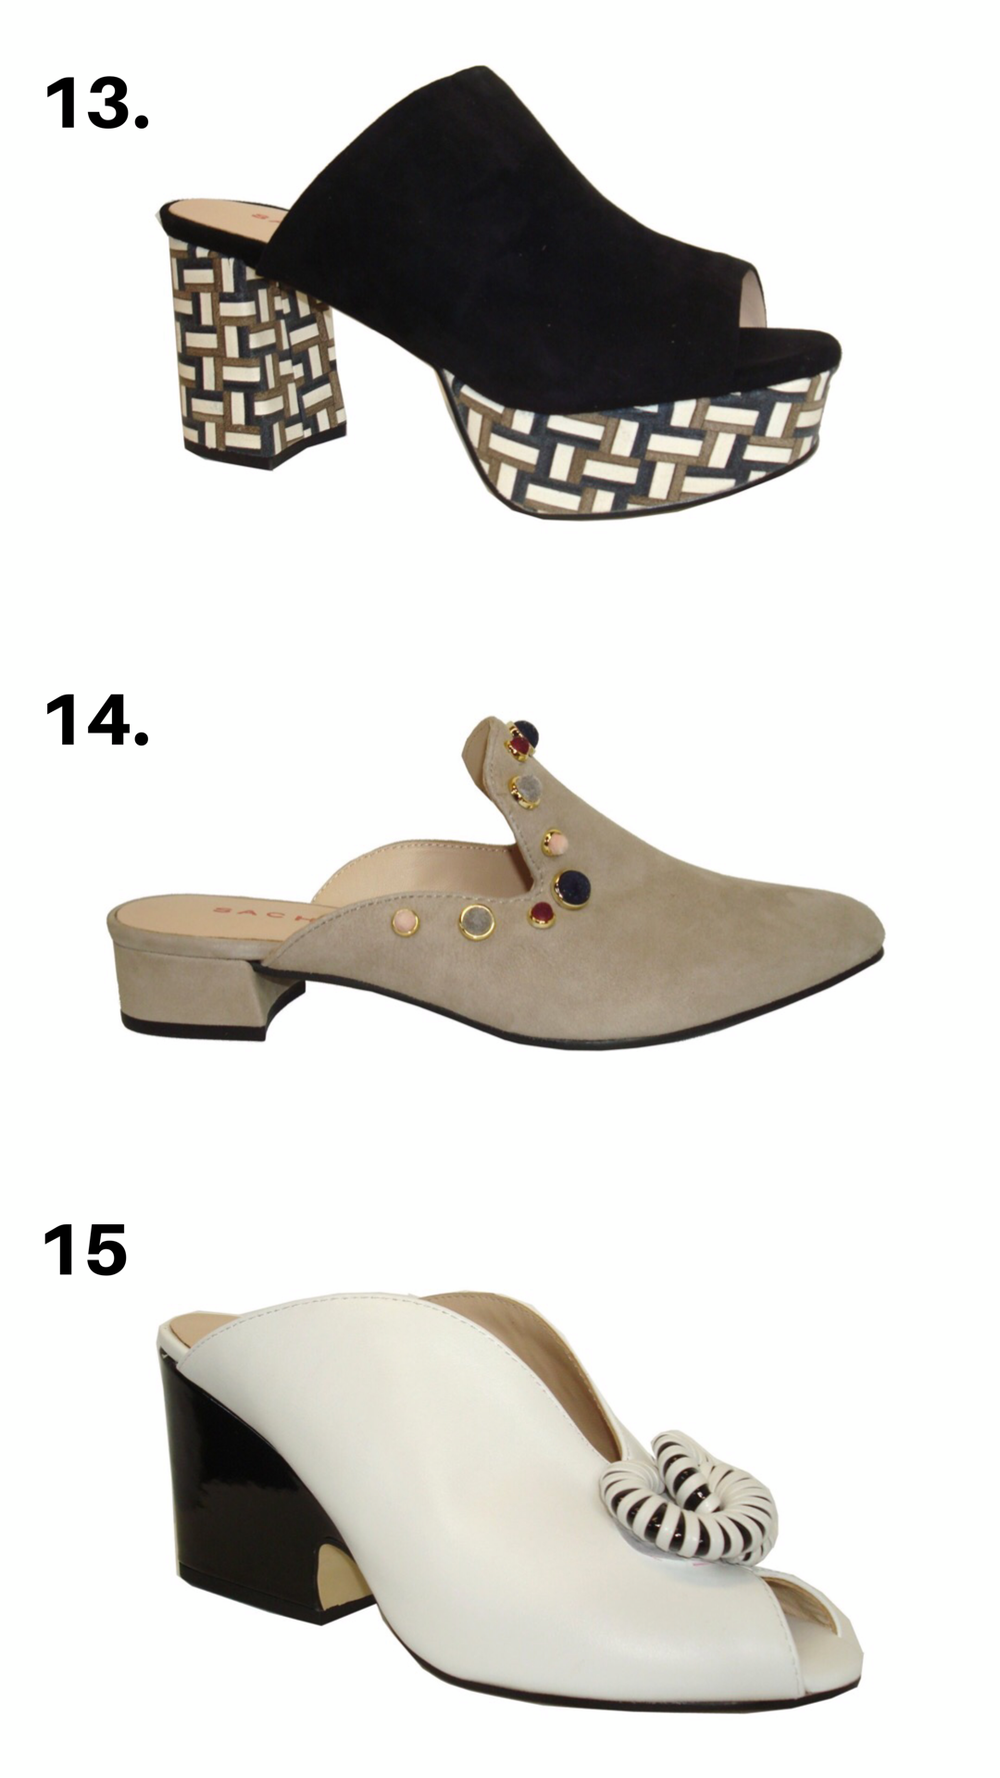 - 13. The Power Platforms make a statement when you step into the room. These platforms are so comfortable! We love to pair them with white denim.CLICK TO PURCHASE———————————————14. The Simply Studded mules that can be worn with everything from jeans to dresses. They make a great addition to your work attire. We love that the decorative studs are covered in navy, maroon, and grey suede.CLICK TO PURCHASE———————————————15. The Unicorn Wedges are the most unique open toe black and white mules. Everyone will be asking where you got these fashion forward shoes.CLICK TO PURCHASE